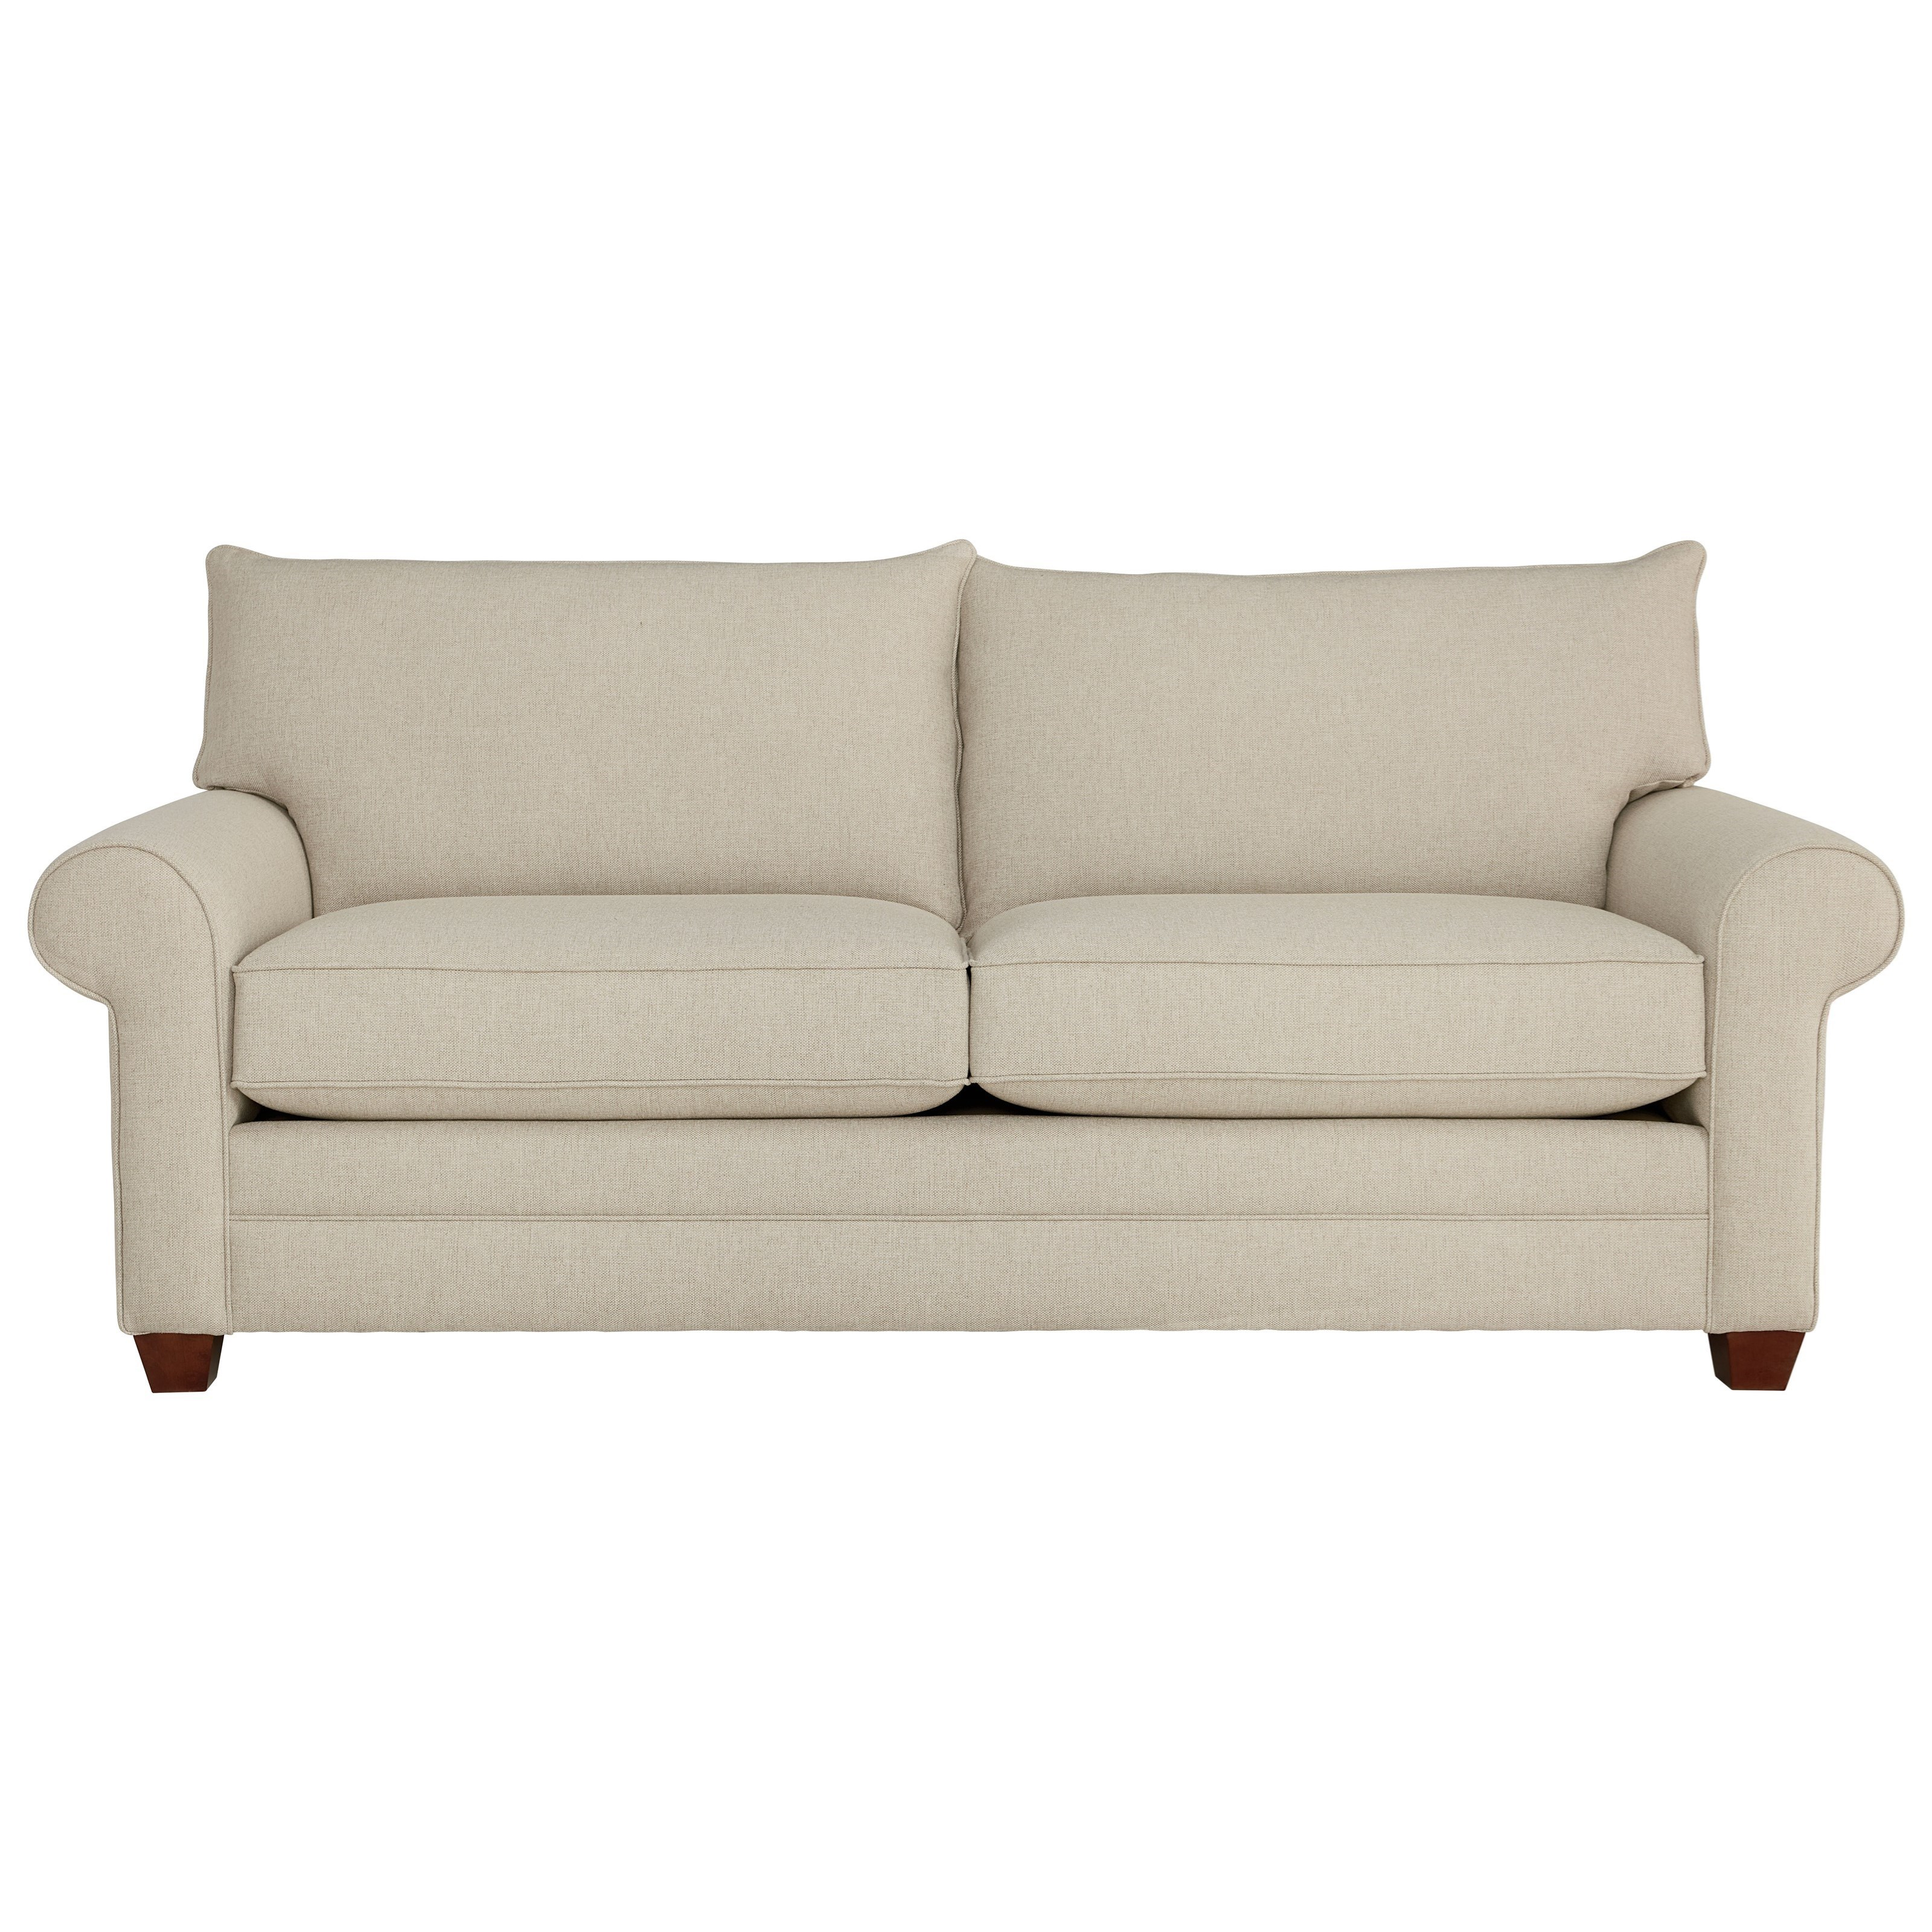 Alexander Sofa by Bassett at H.L. Stephens